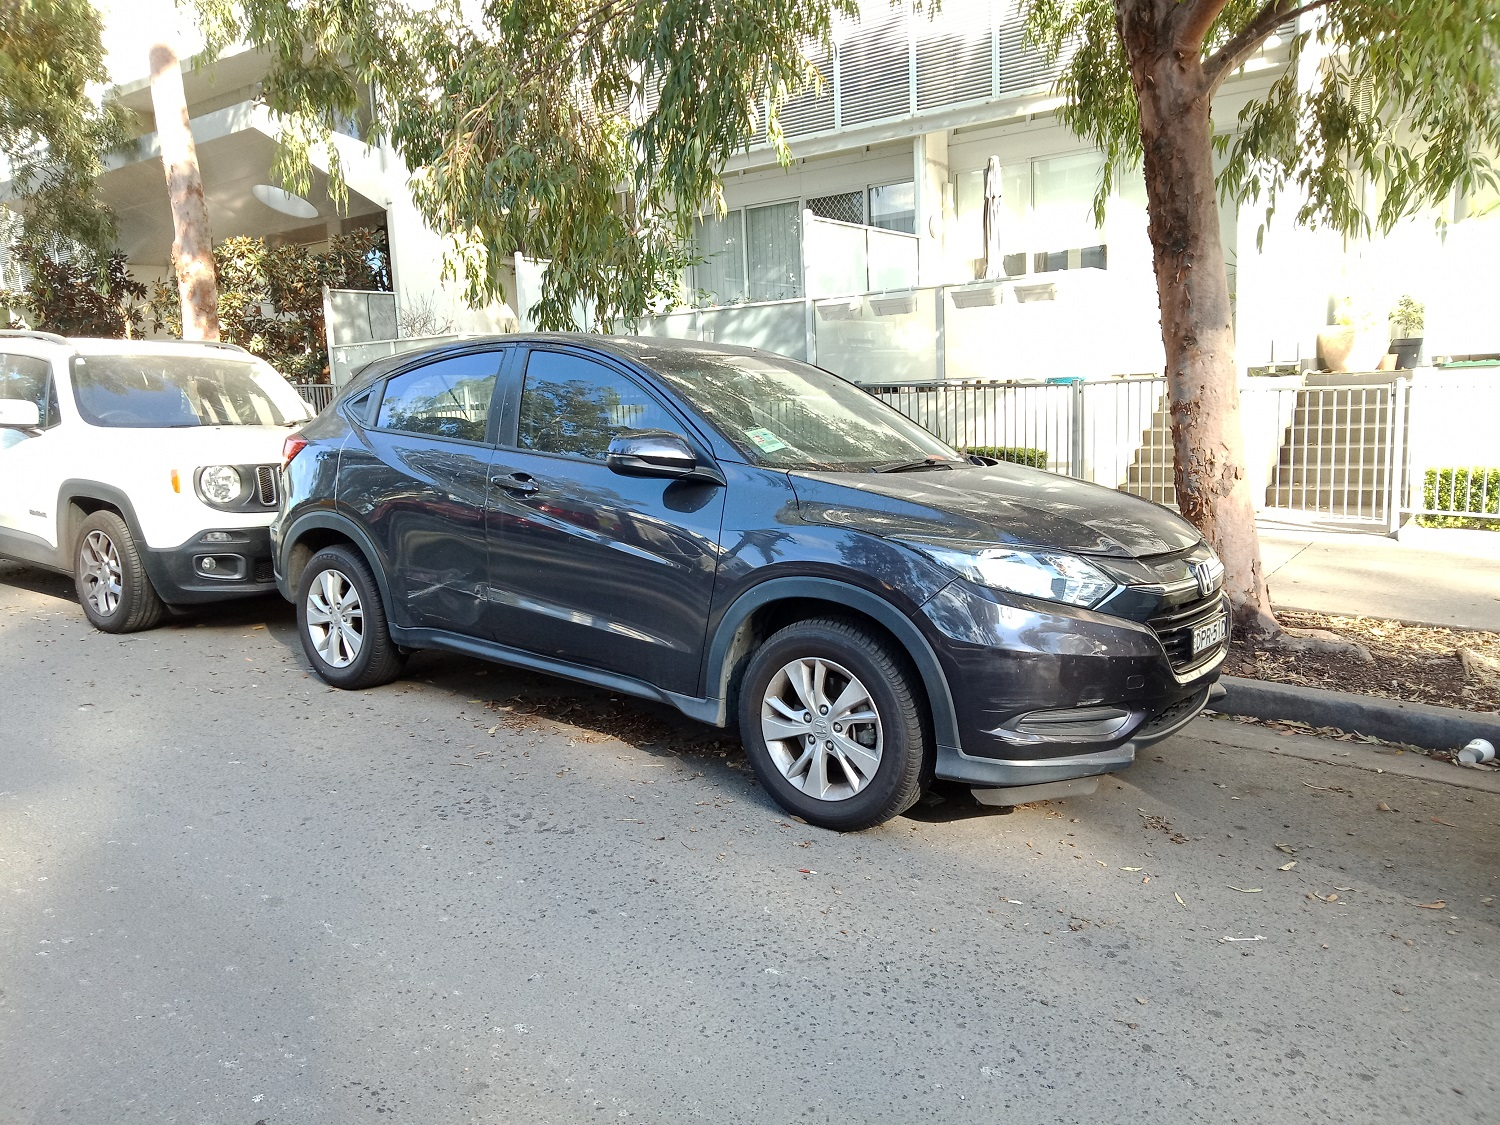 Picture of Boyu's 2017 Honda HR-V